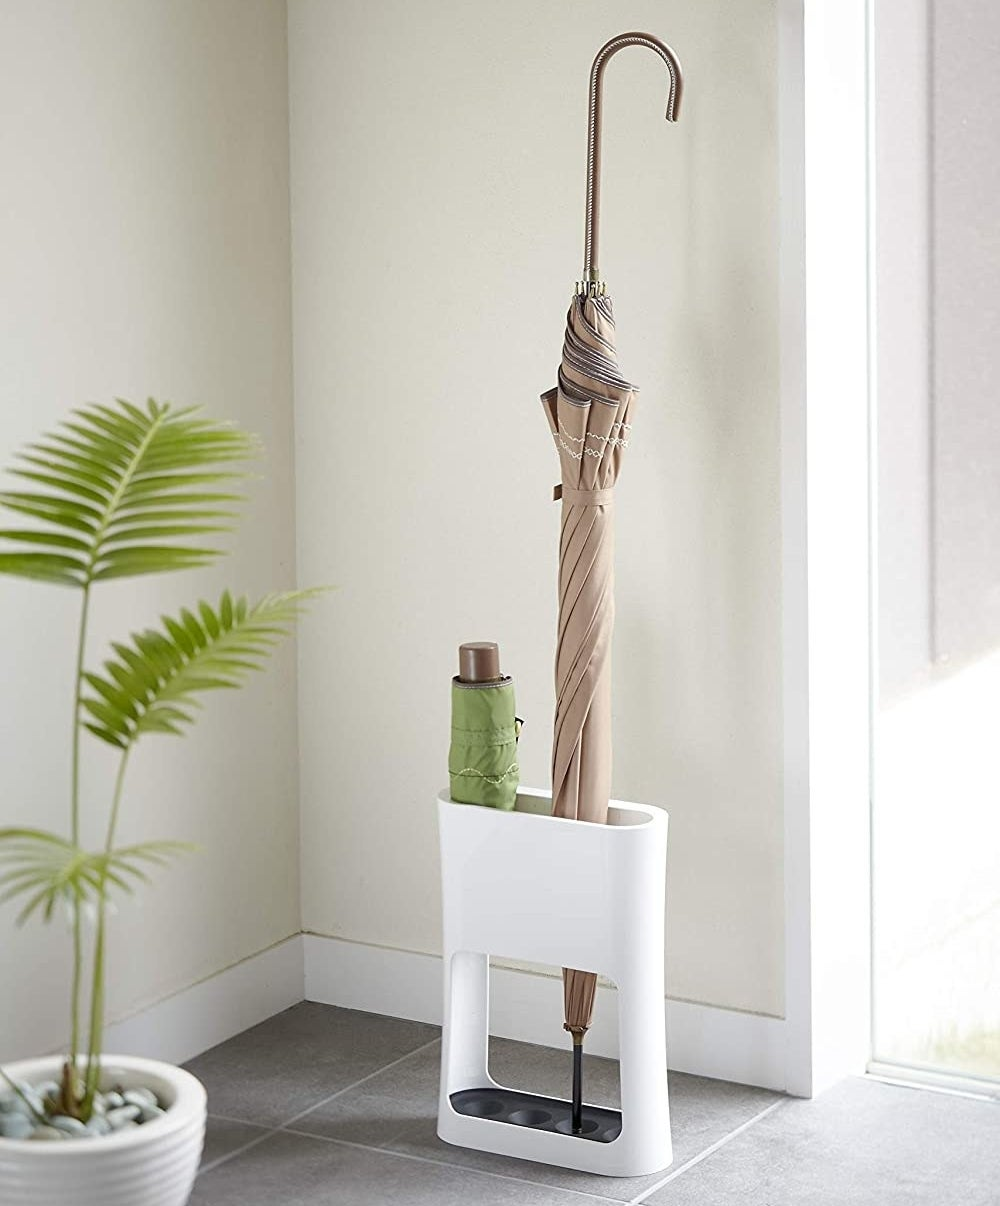 The umbrella stand with a large umbrella and a small portable one sitting inside